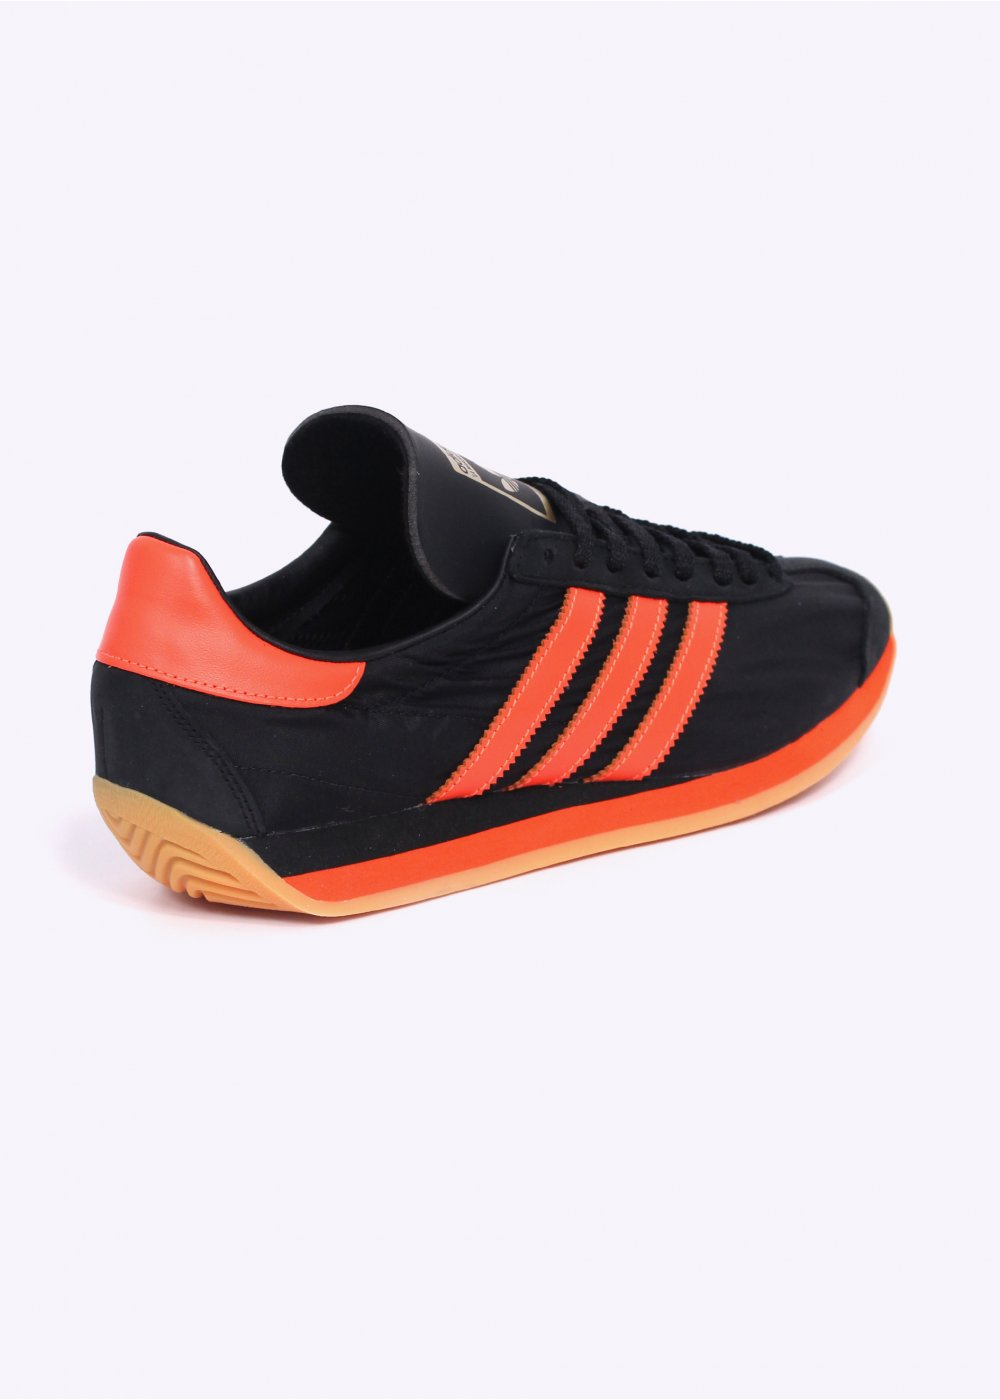 Adidas Originals Originals Top Ten Low Sneaker In Black: Adidas Originals Country OG Trainers